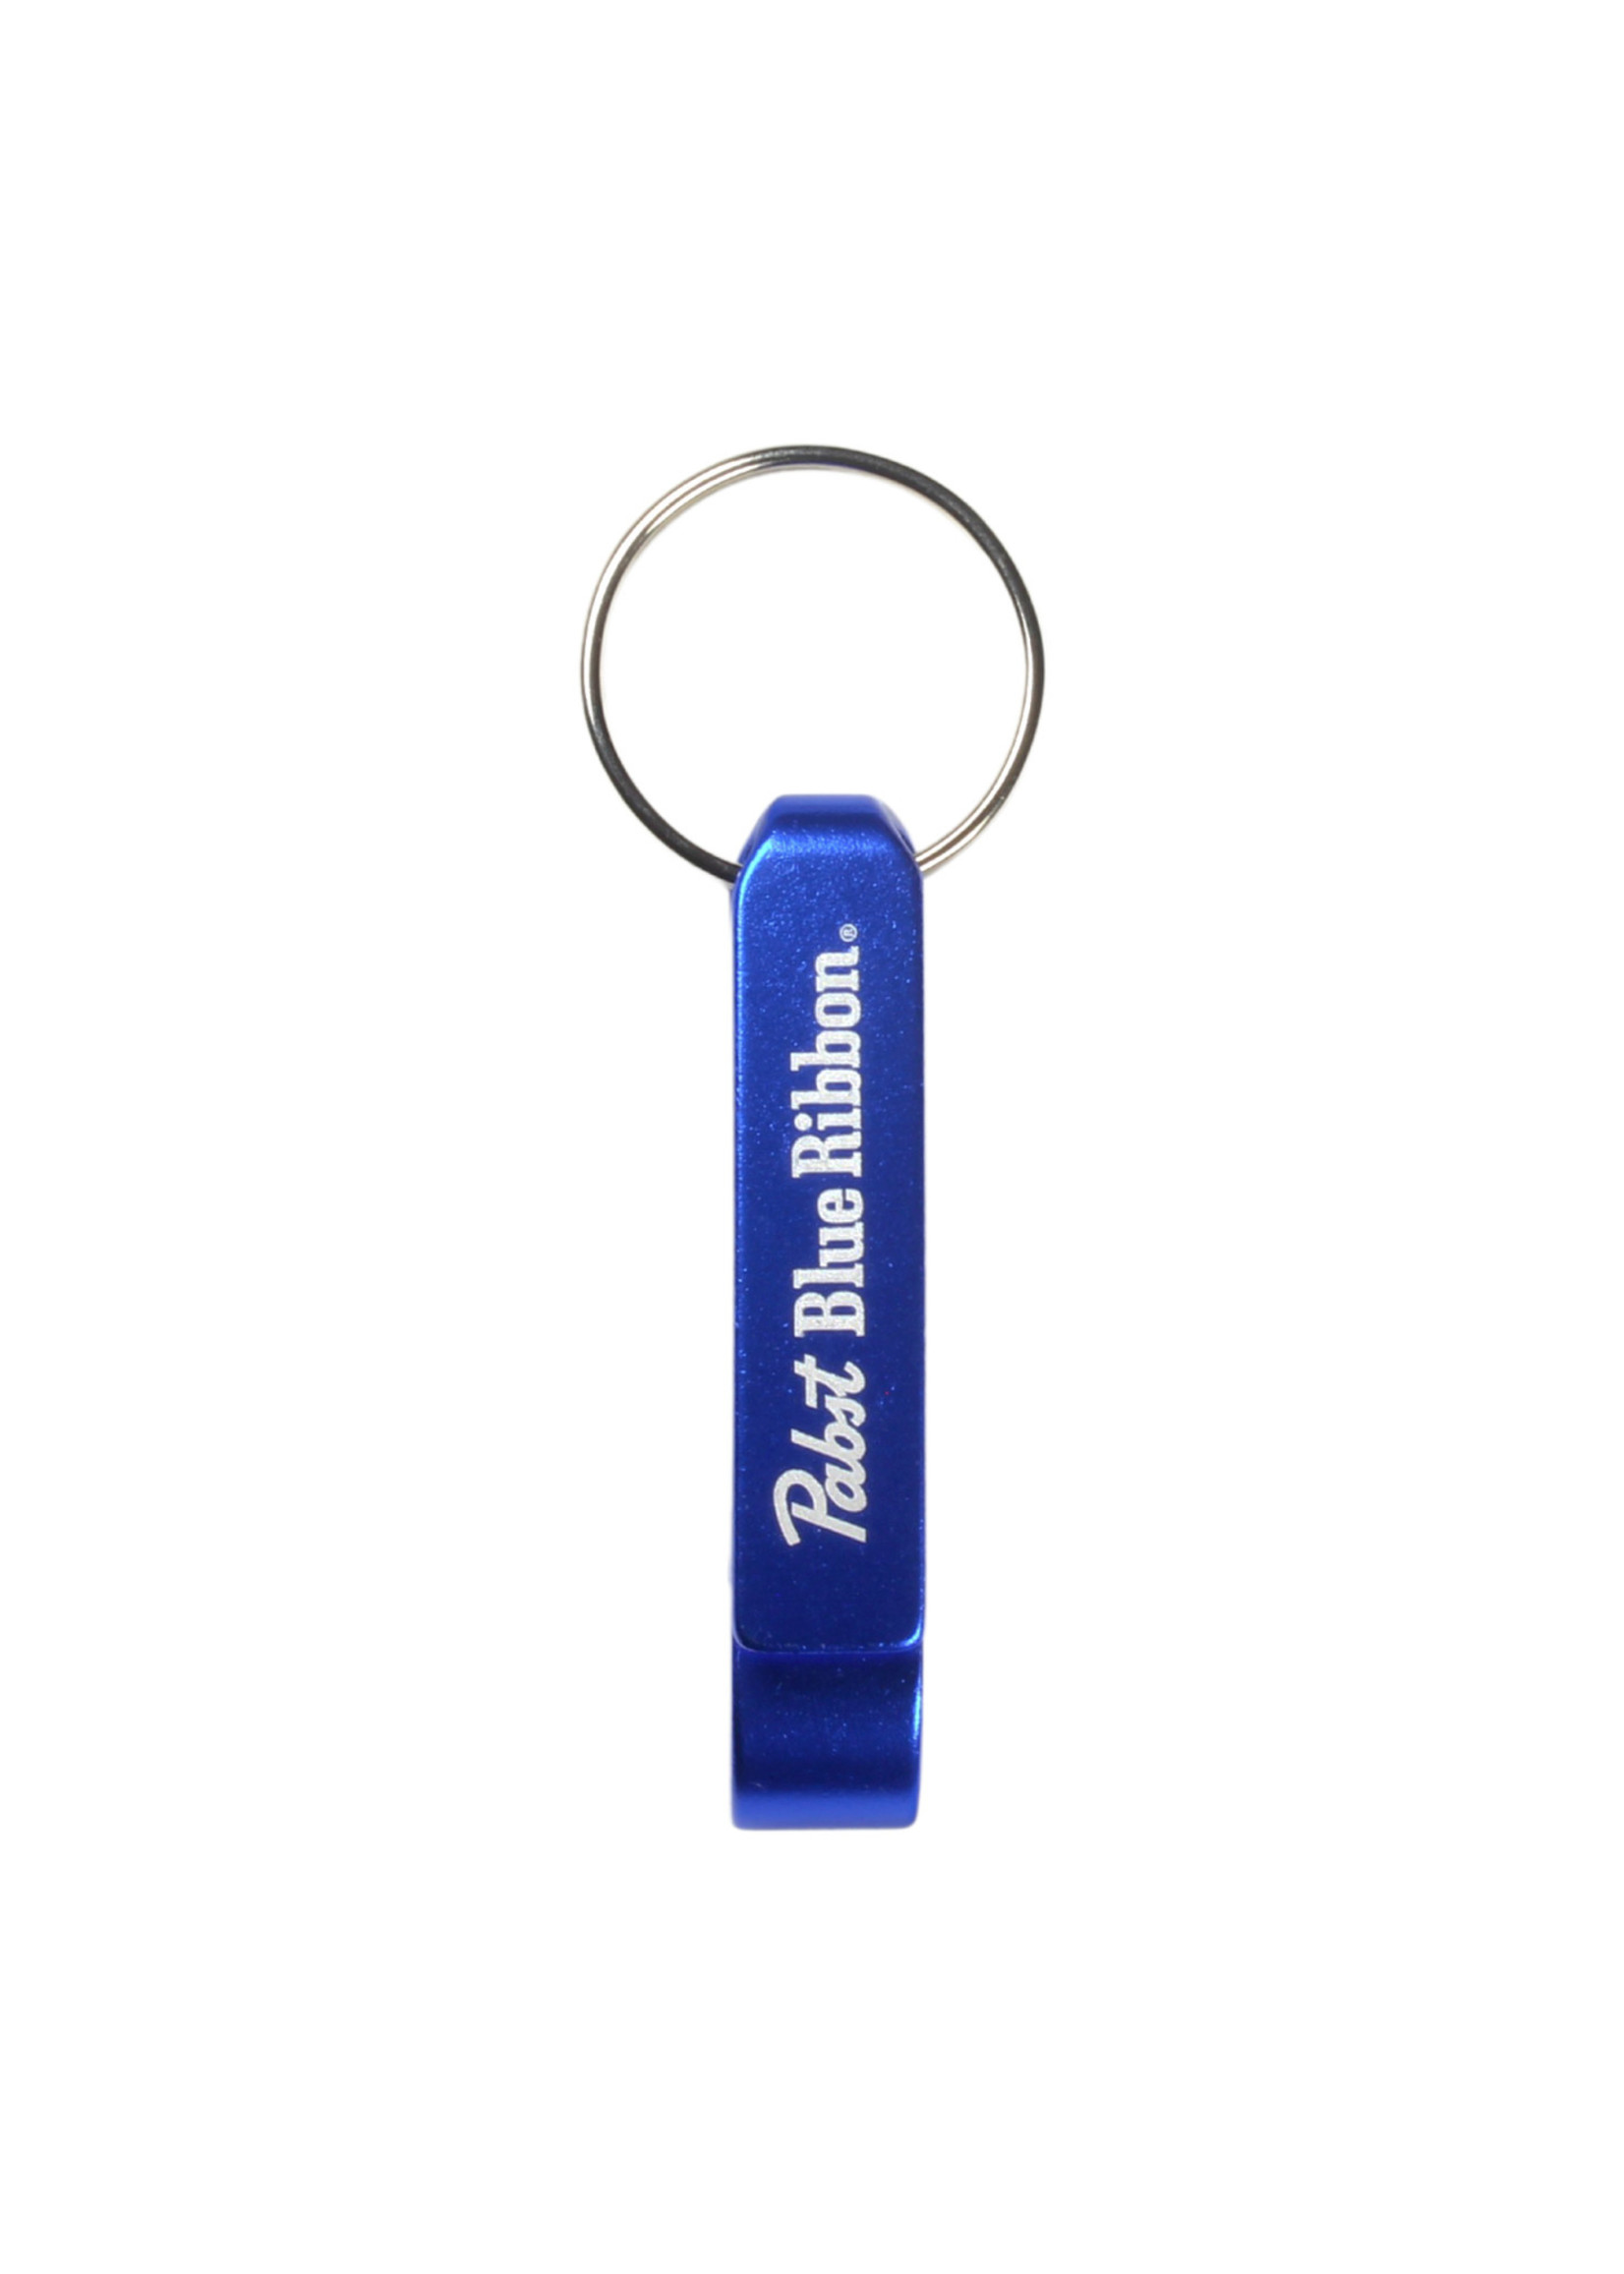 Pabst Pabst Wrench Opener Keyring